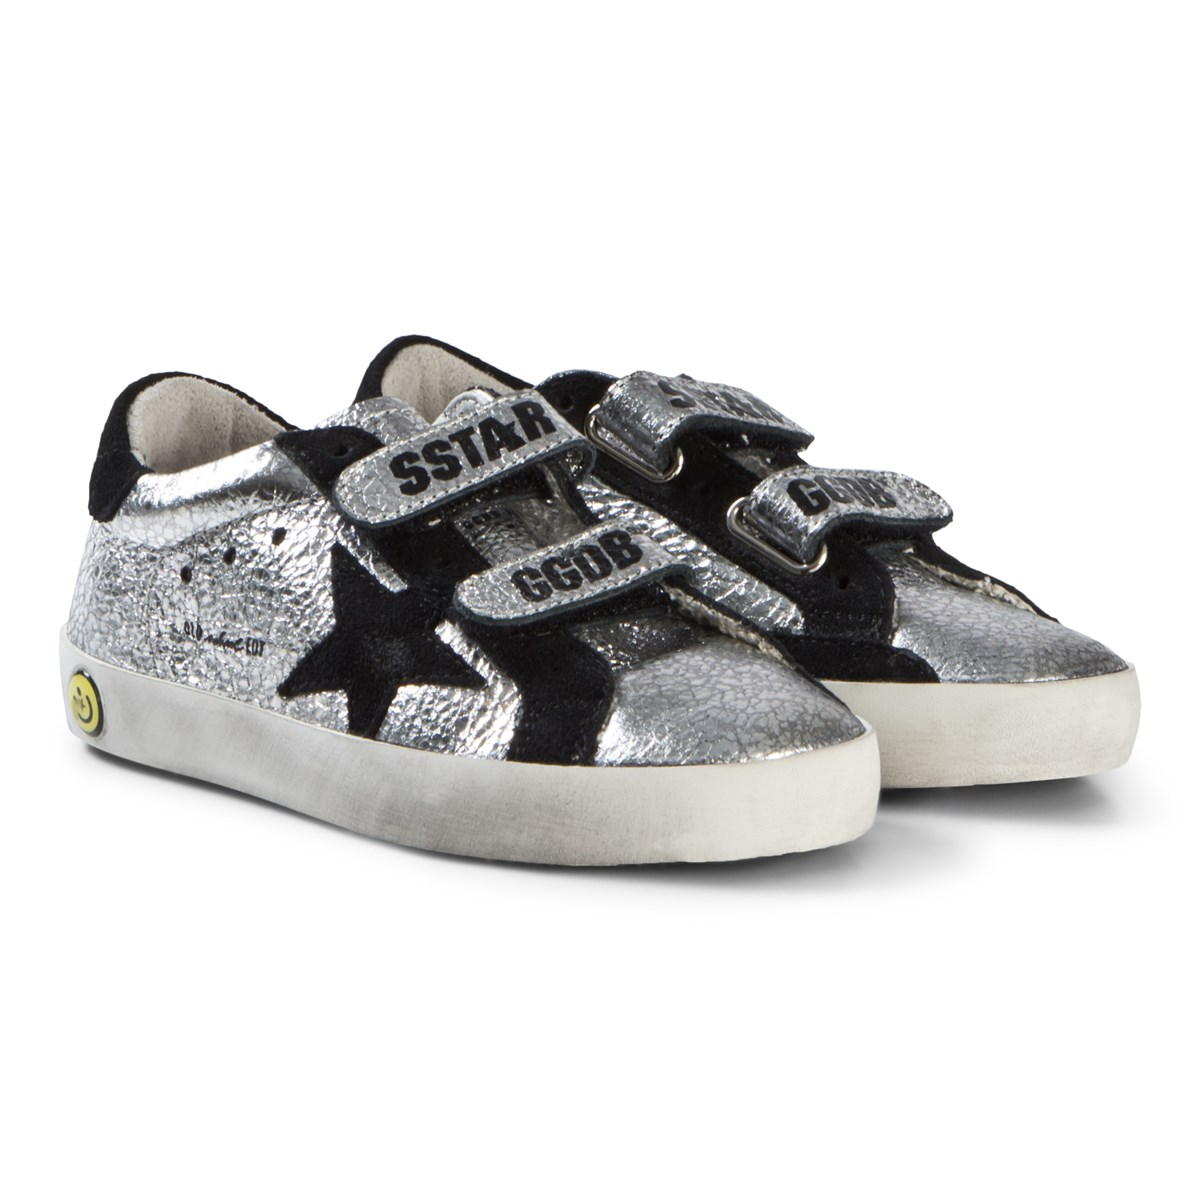 Golden Goose - Silver Leather and Black